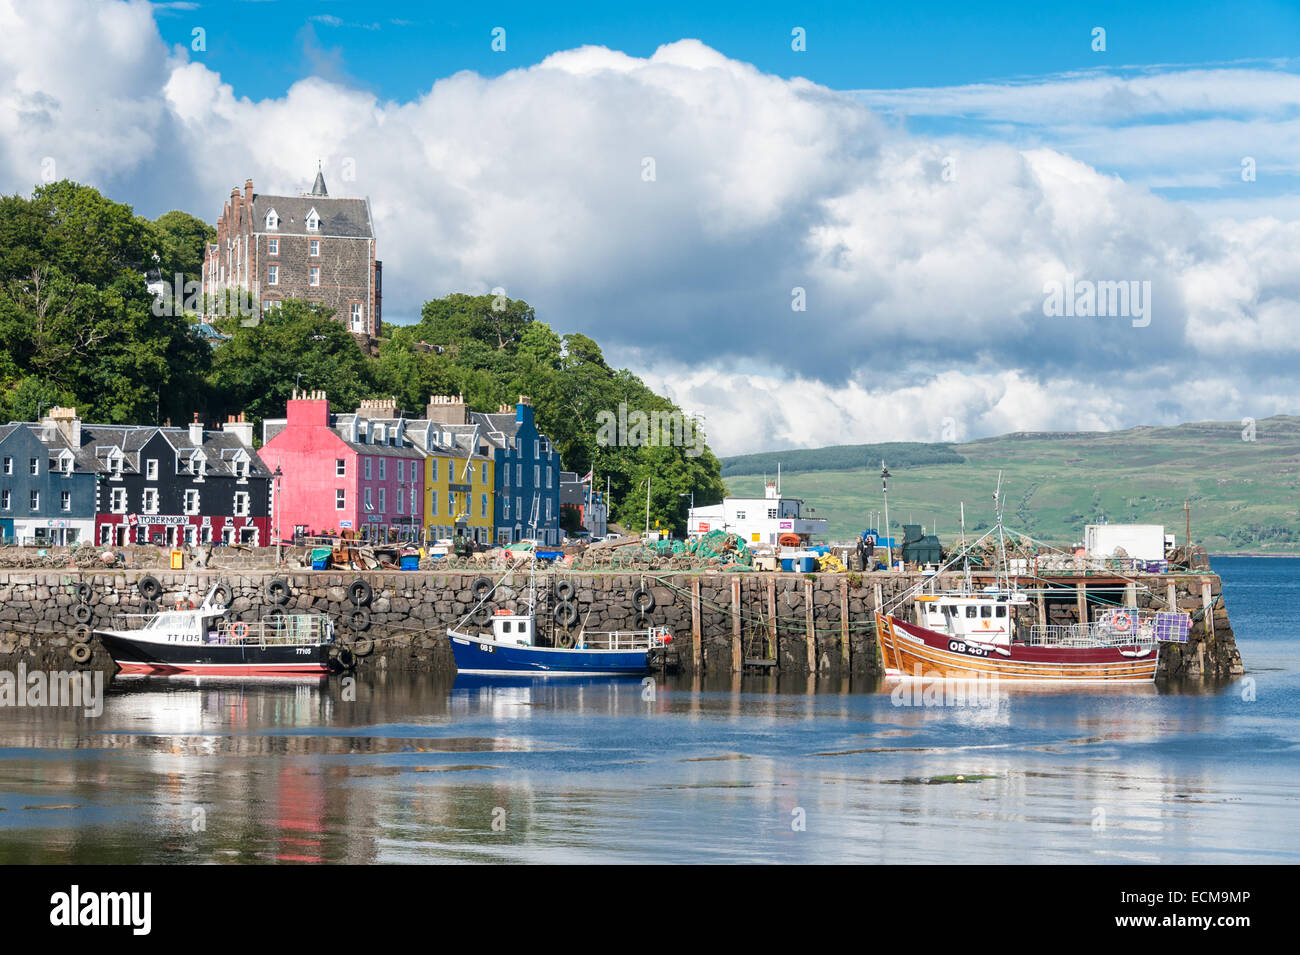 The colourful harbour in Tobermory, the largest town on the island of Mull off Scotland's west coast. Stock Photo